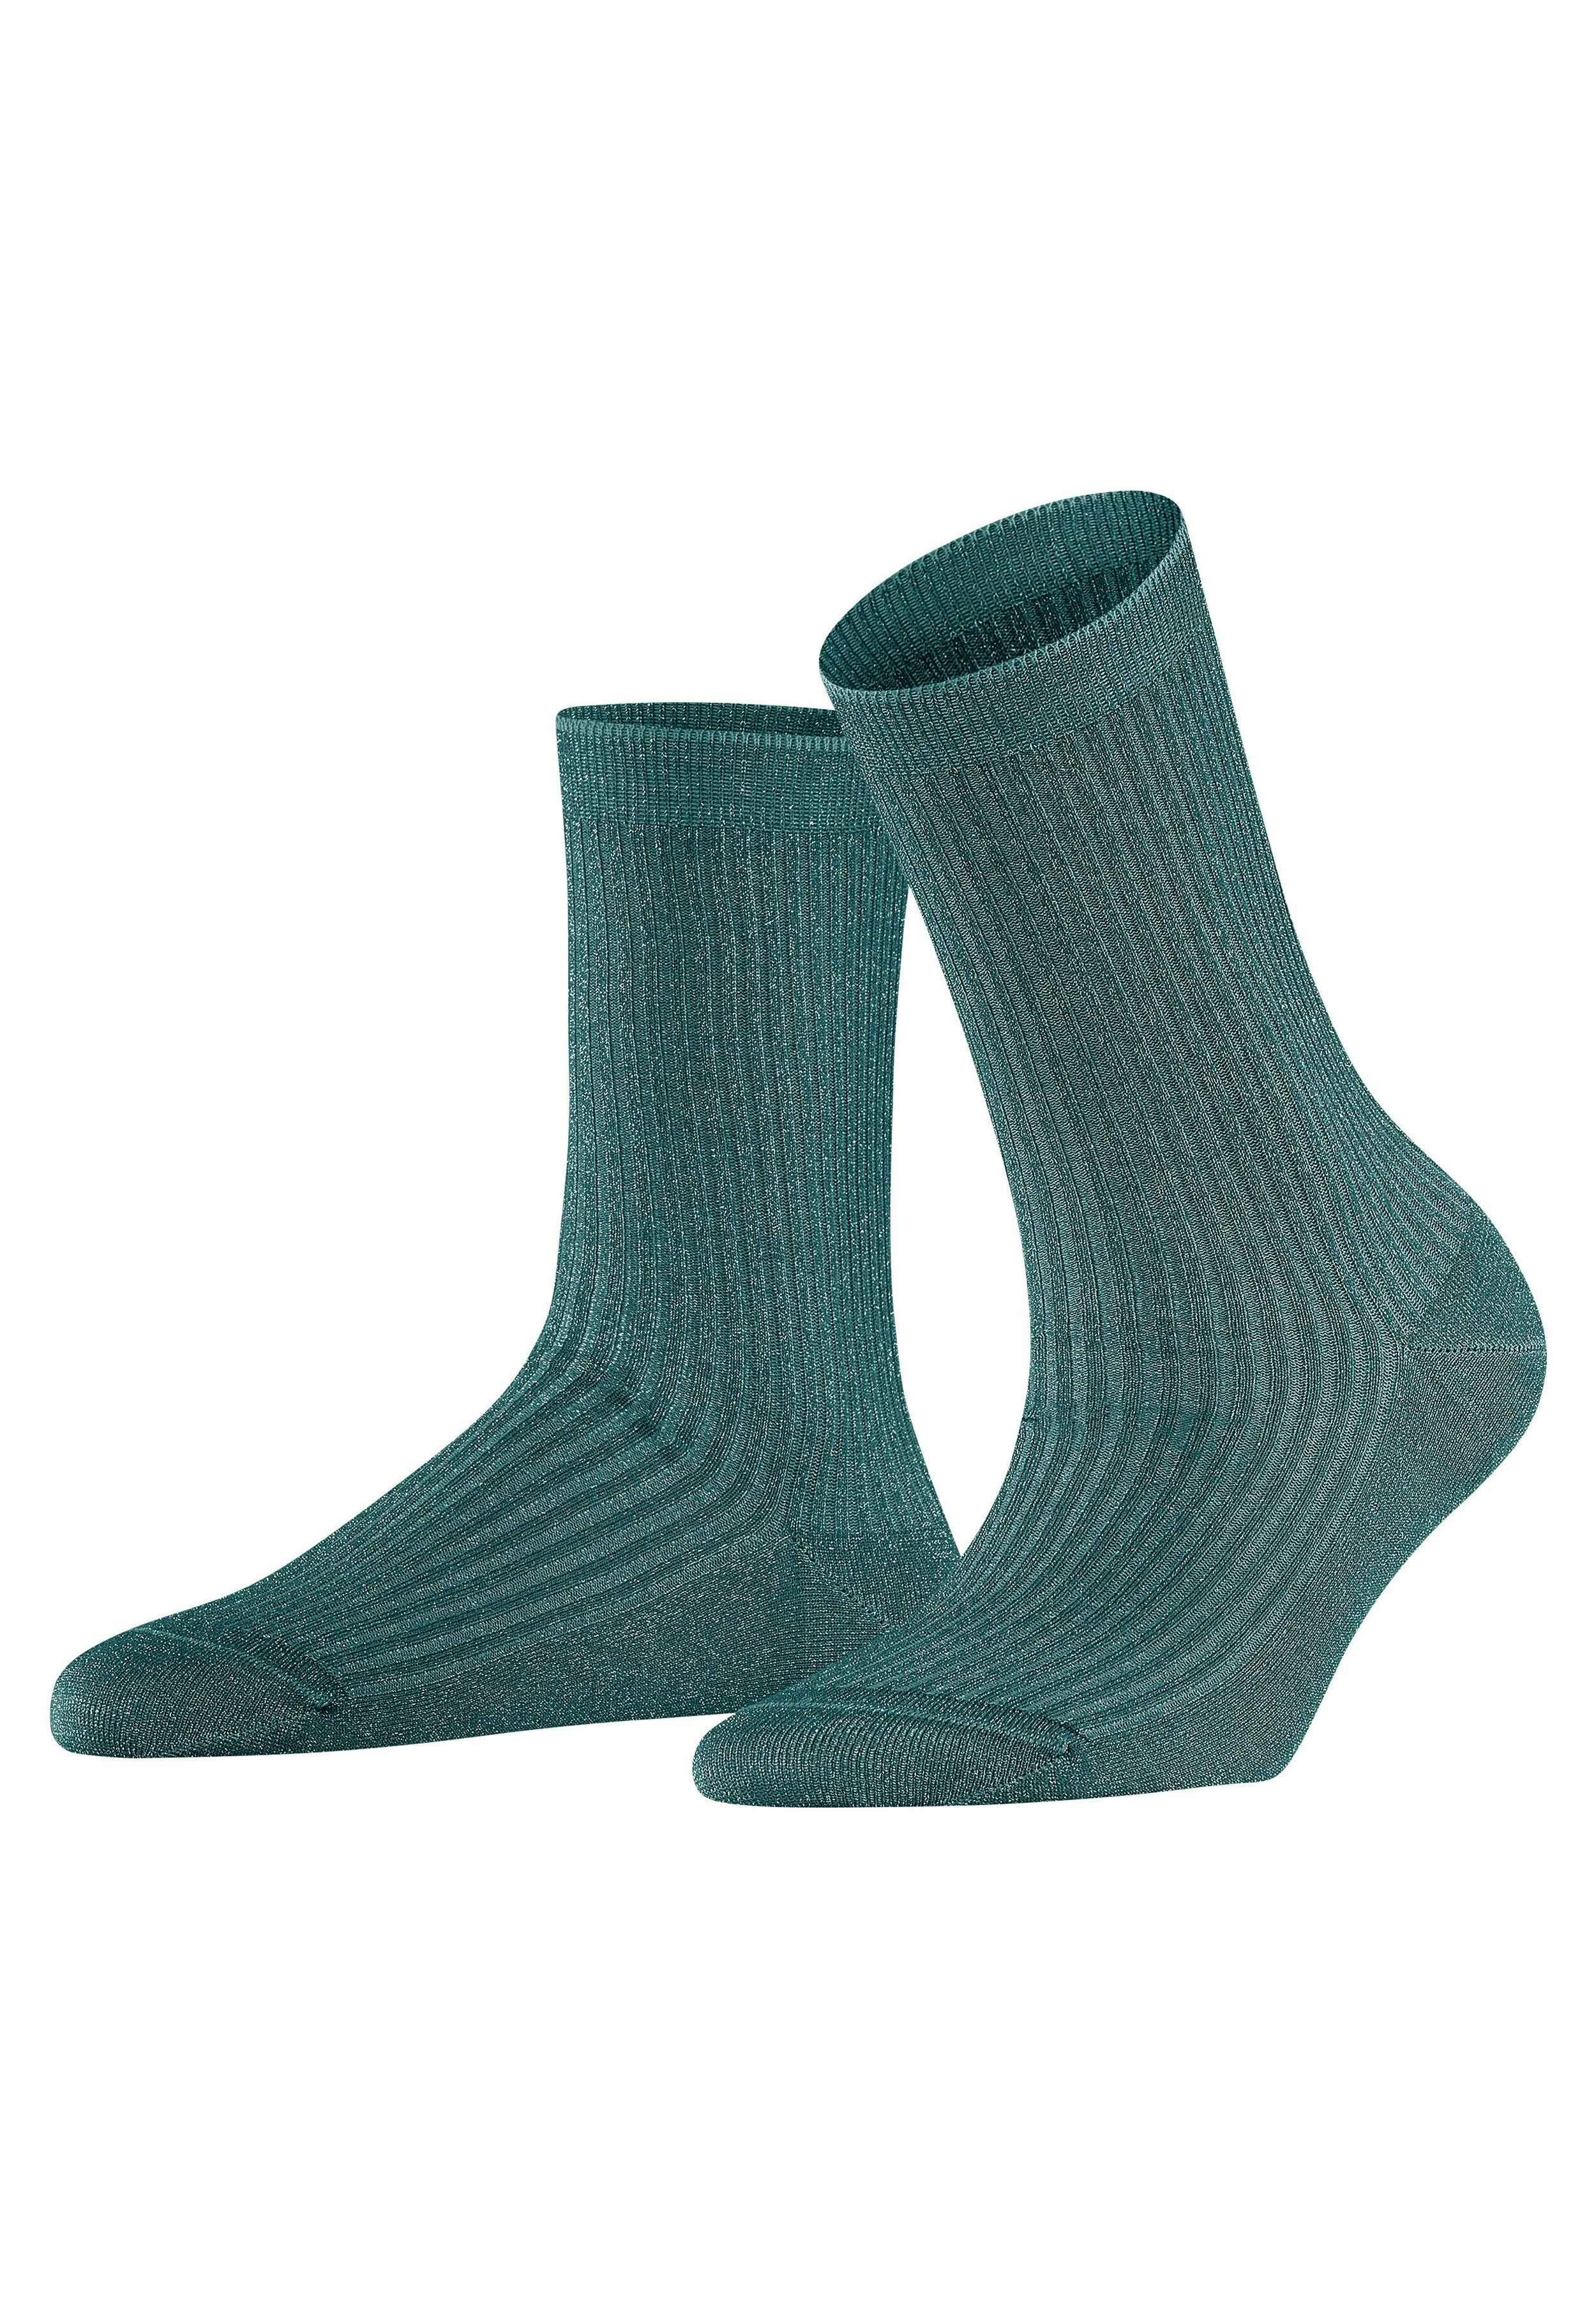 Femme SHINY - Chaussettes - peacock